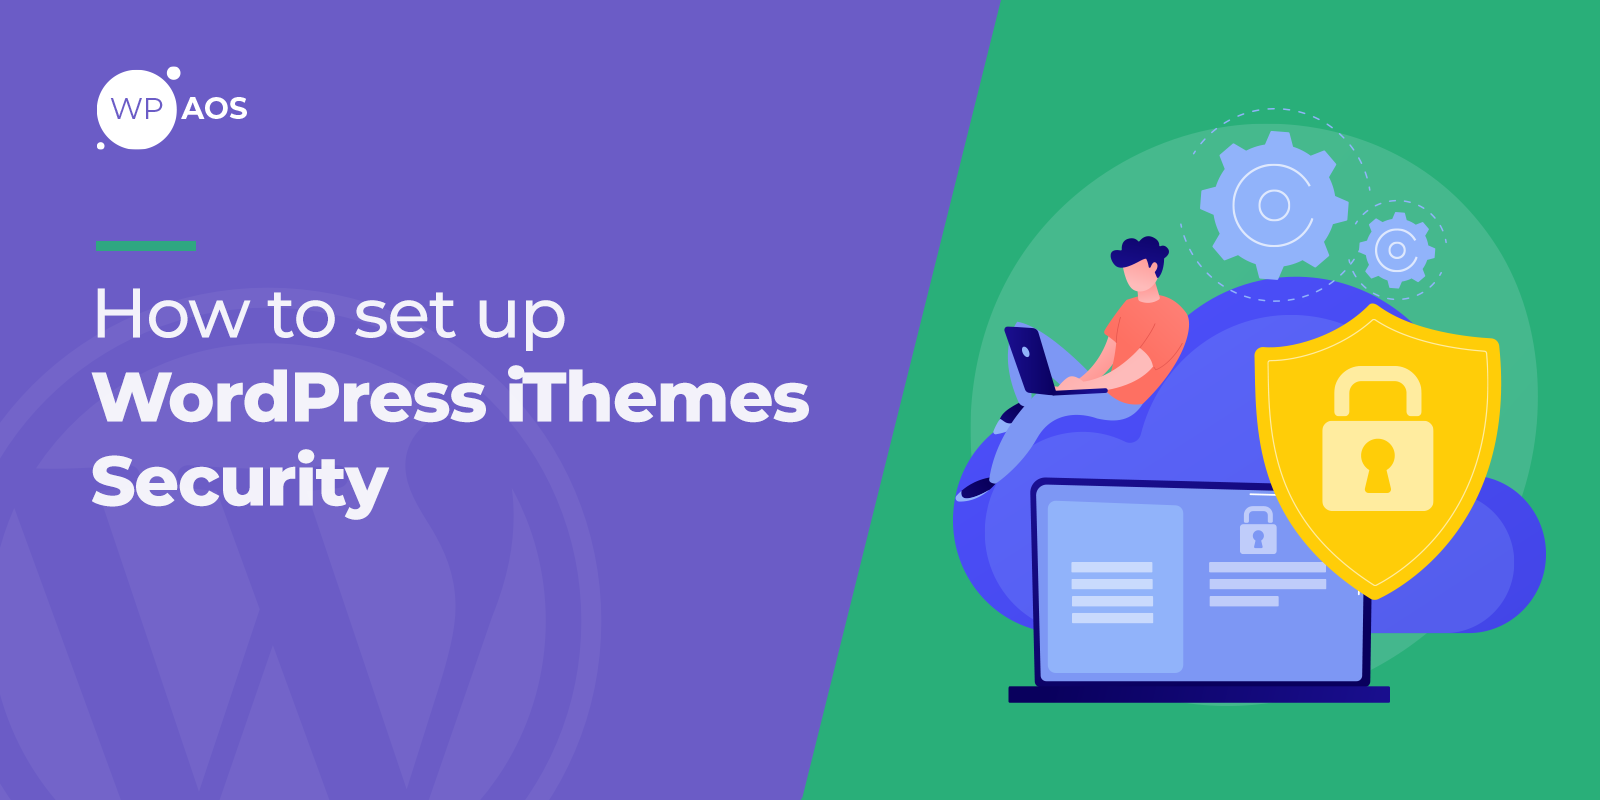 how-to-set-up-wordpress-ithemes-security